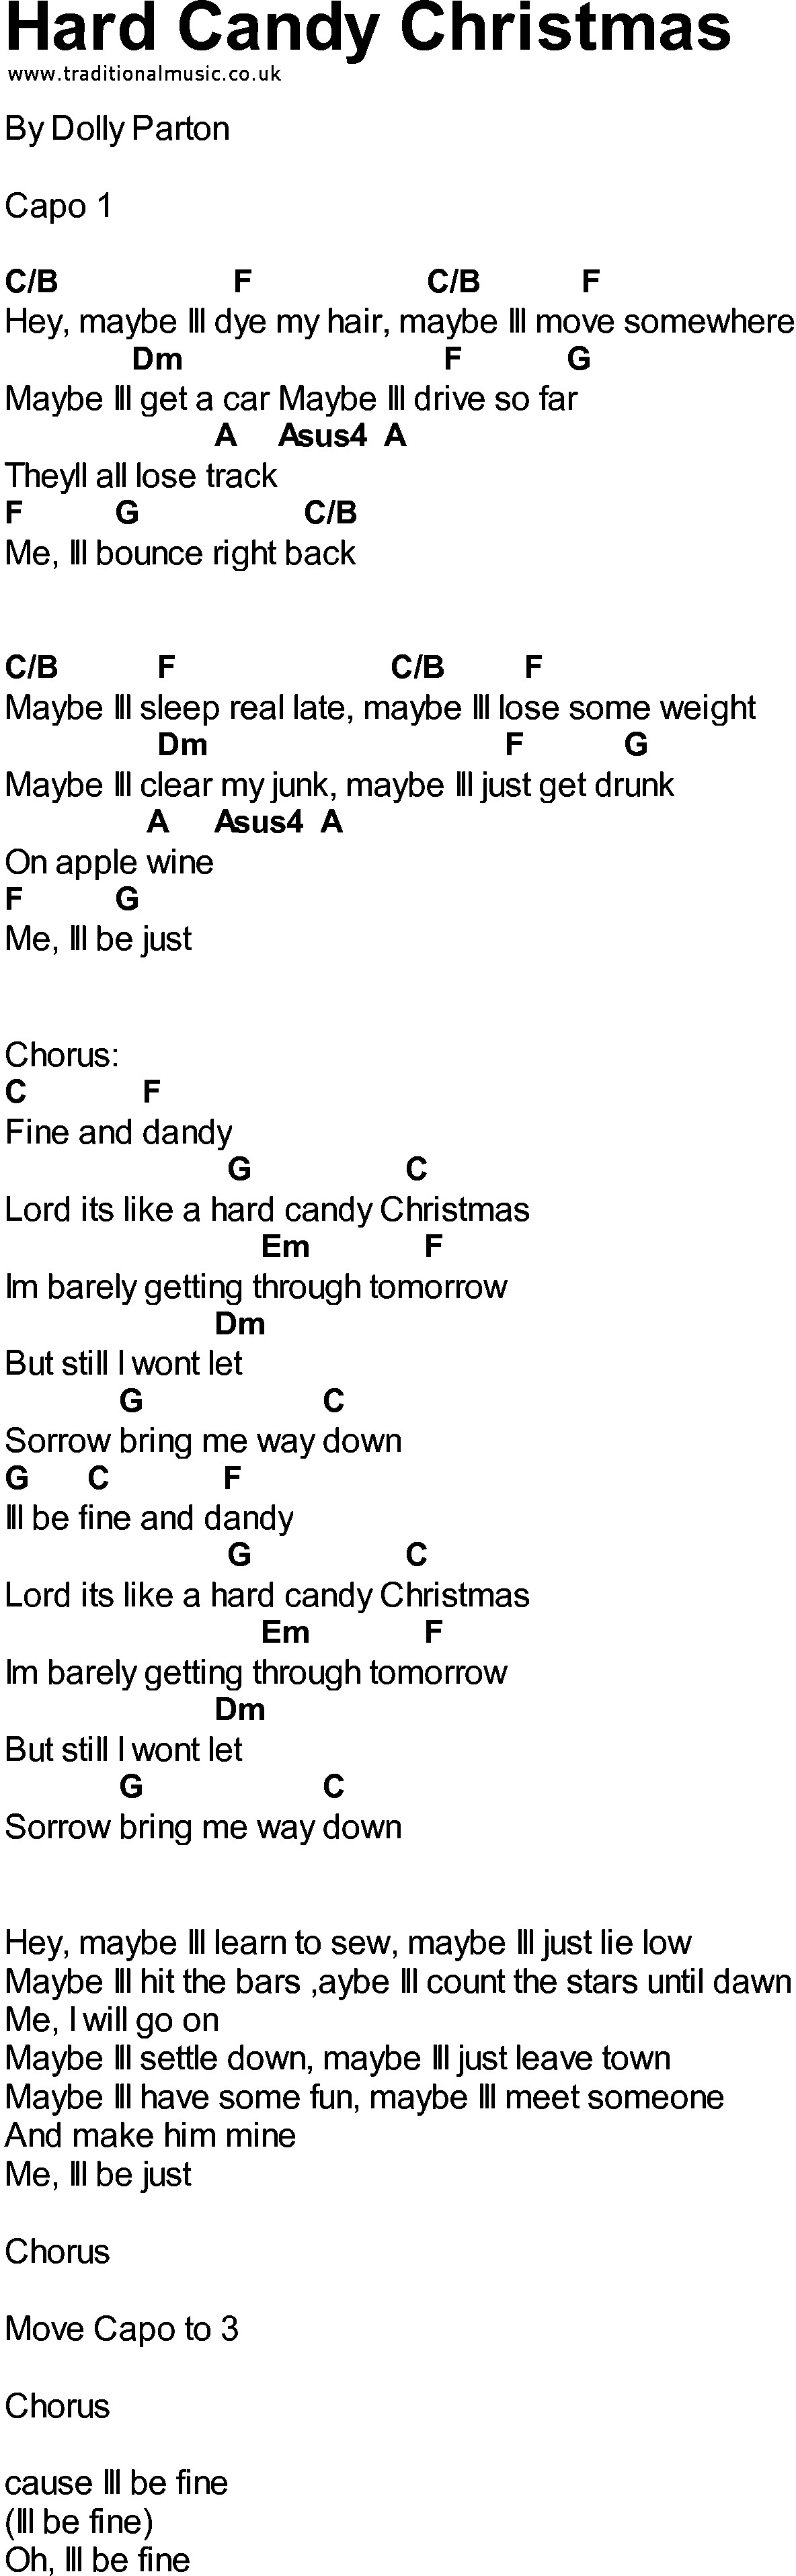 Lyrics Hard Candy Christmas  Bluegrass songs with chords Hard Candy Christmas